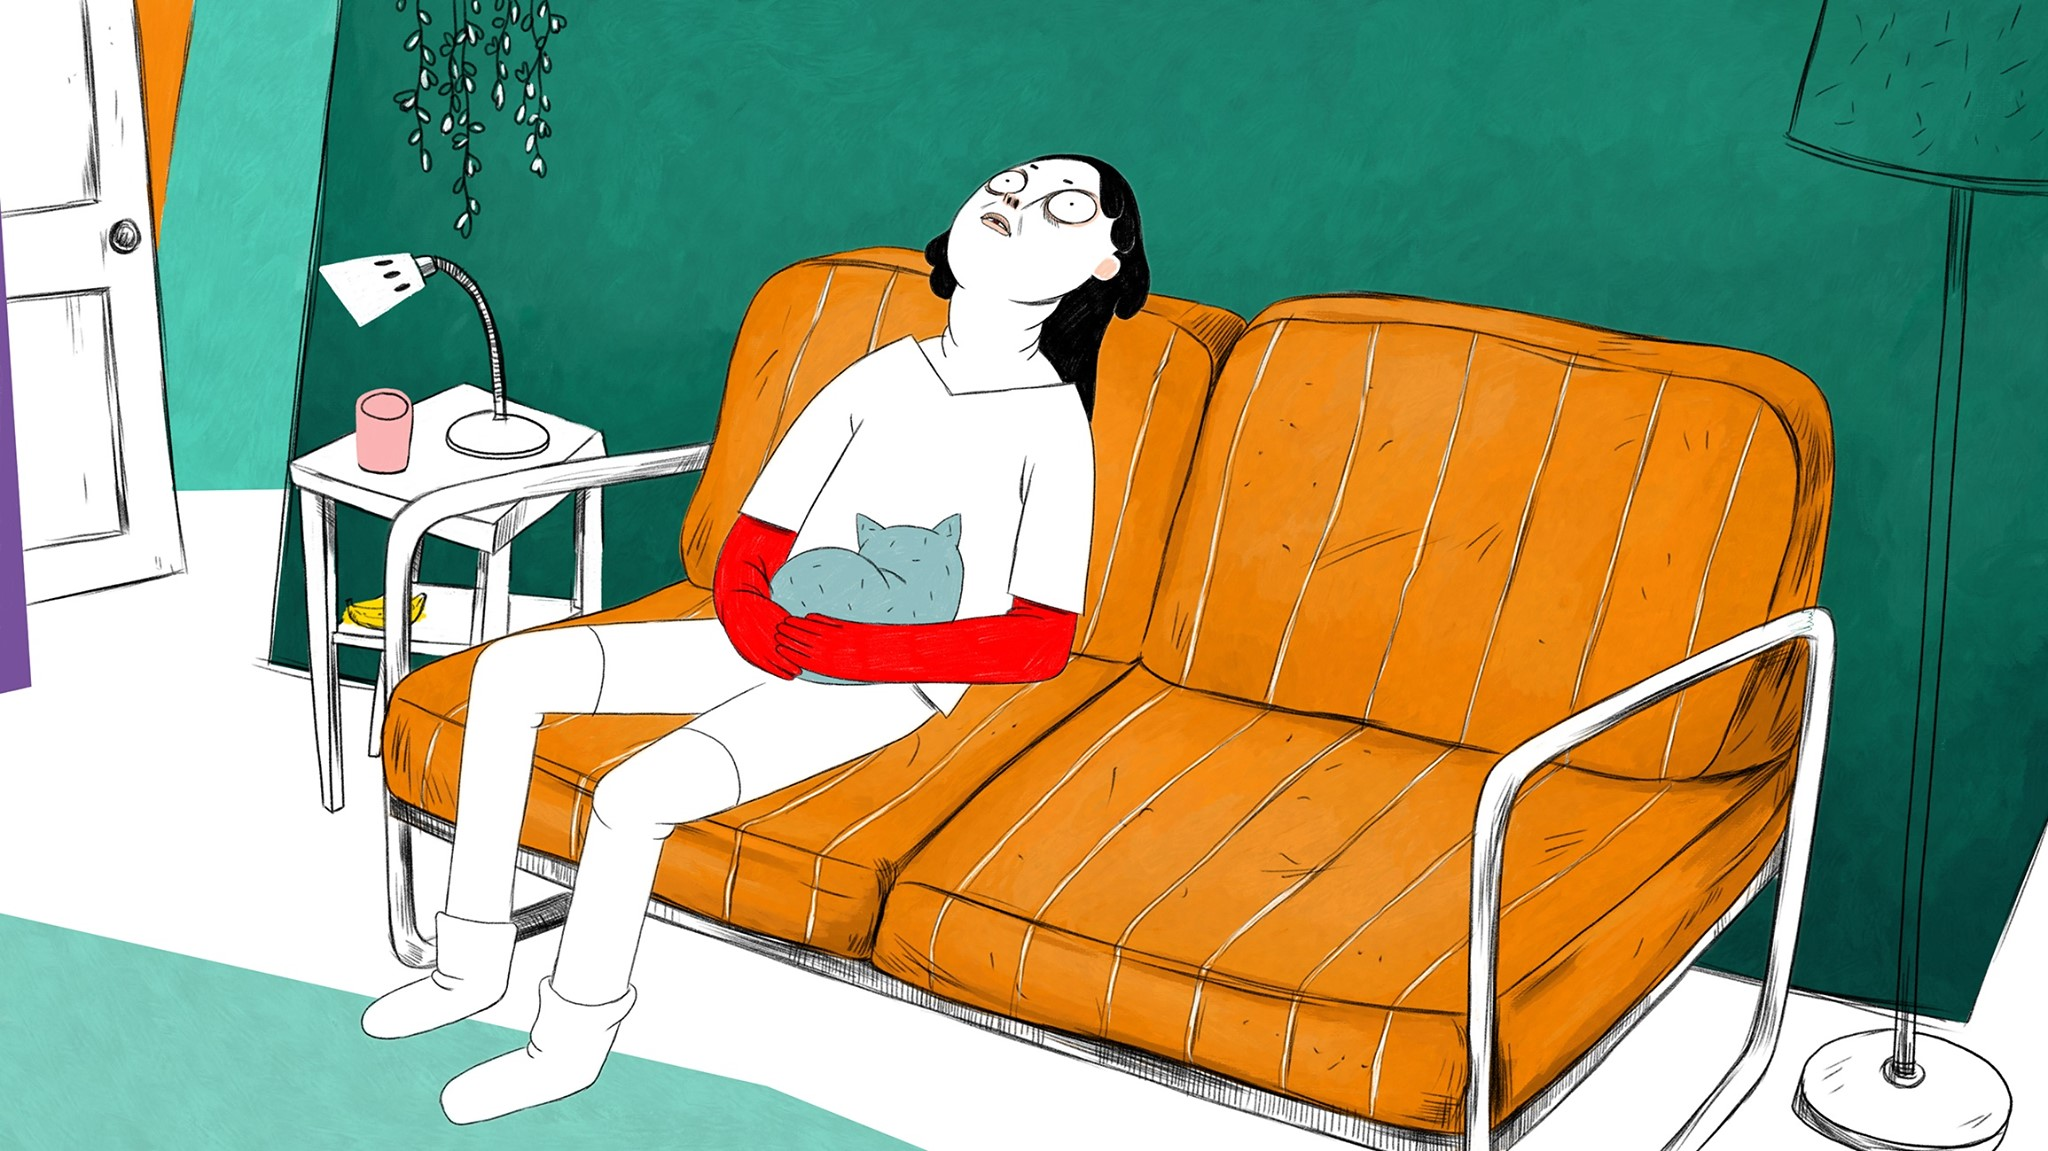 Illustration of someone resting with a cat on their lap. They appear to be on a mid-century modern couch with orange, fabric cushions and fine, metalic legs. The walls are turquoise.